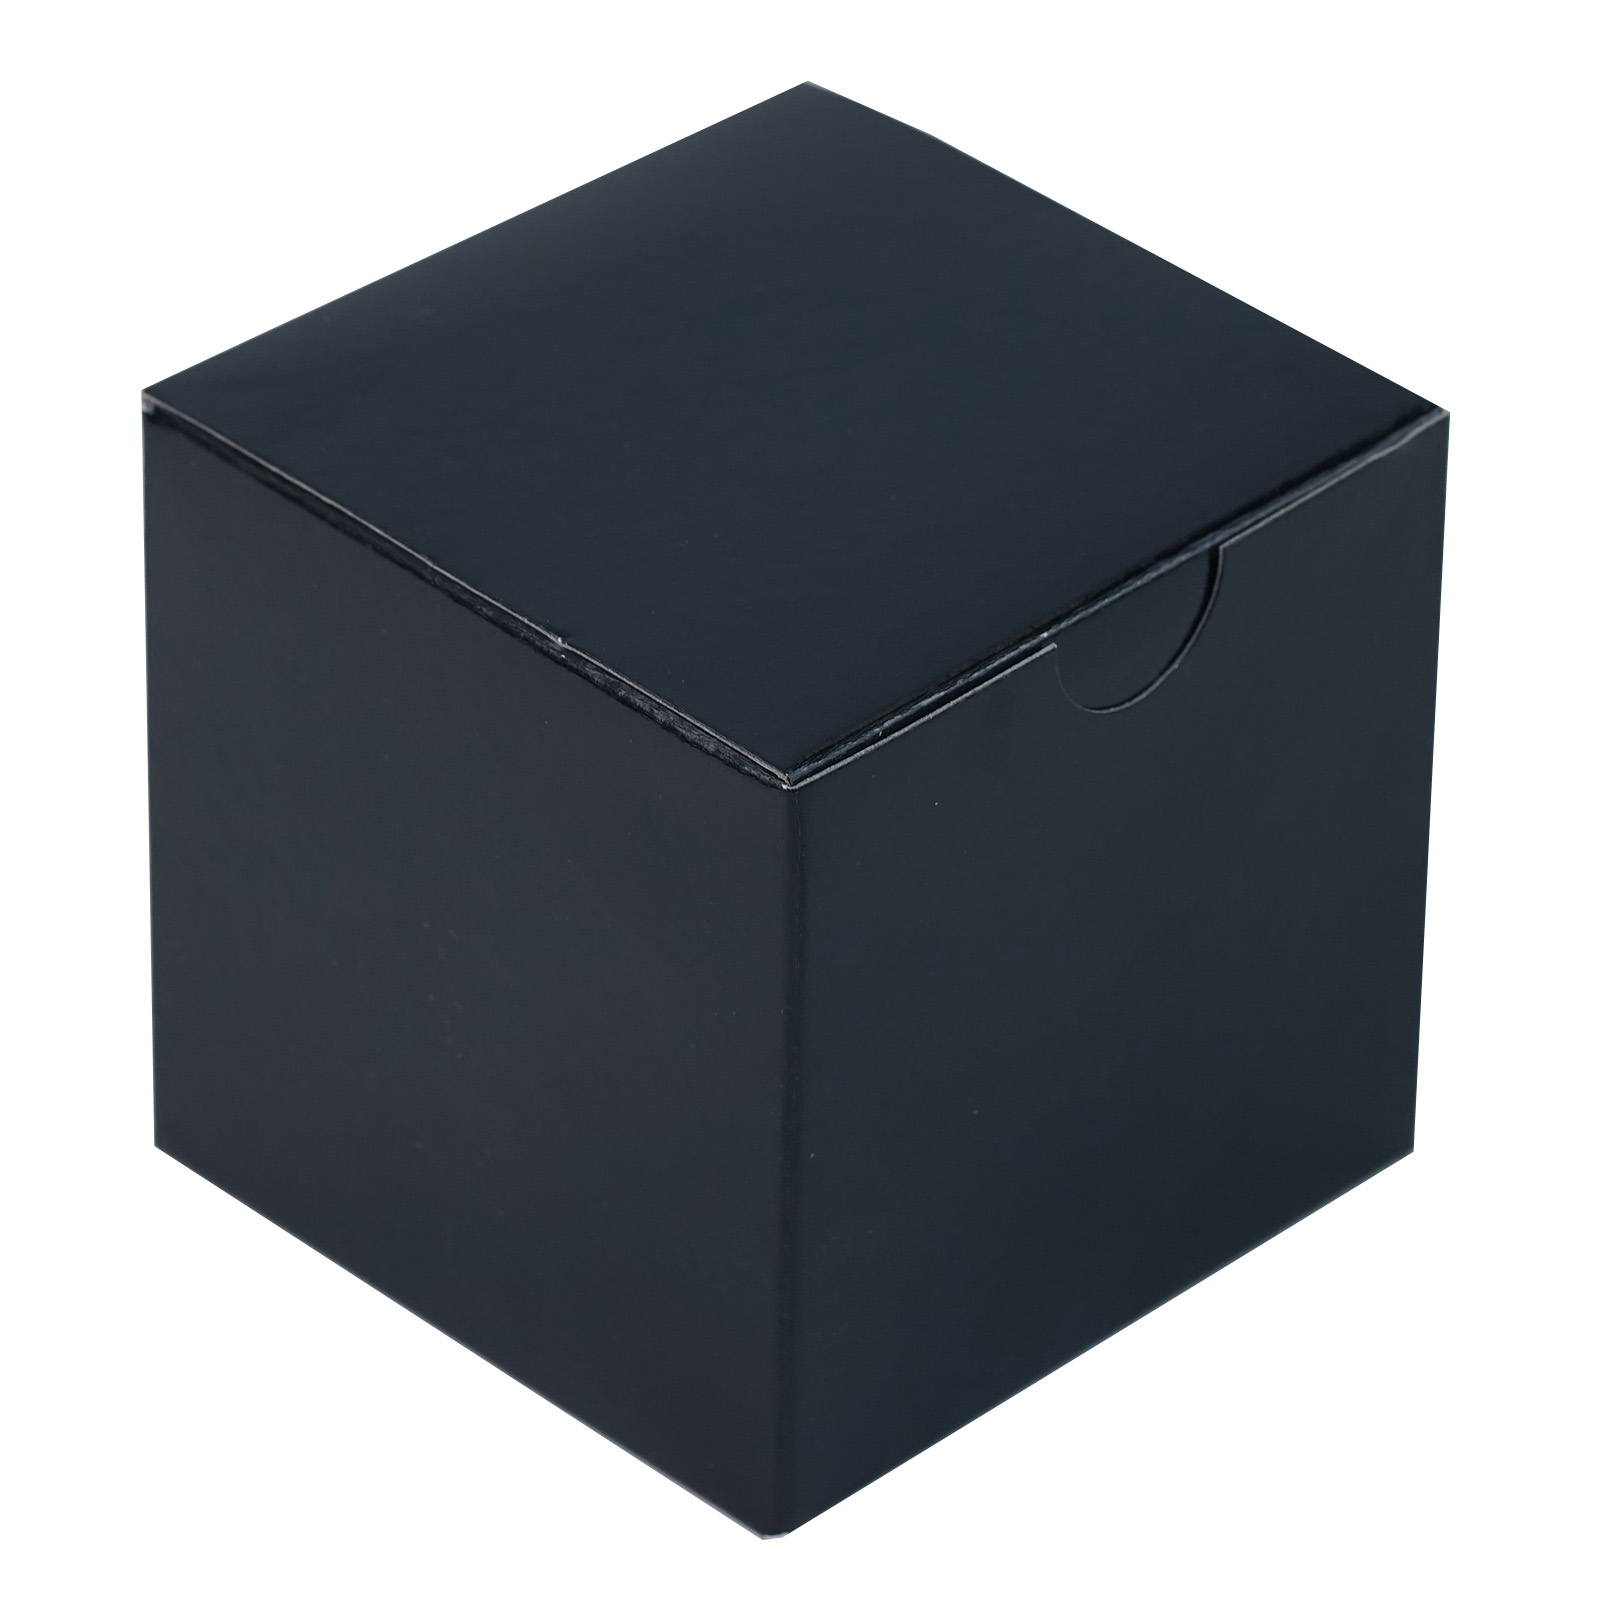 Wedding Gift Packaging: 200 Pcs 3x3x3 Inch Paper GIFT BOXES Wedding FAVORS Easy